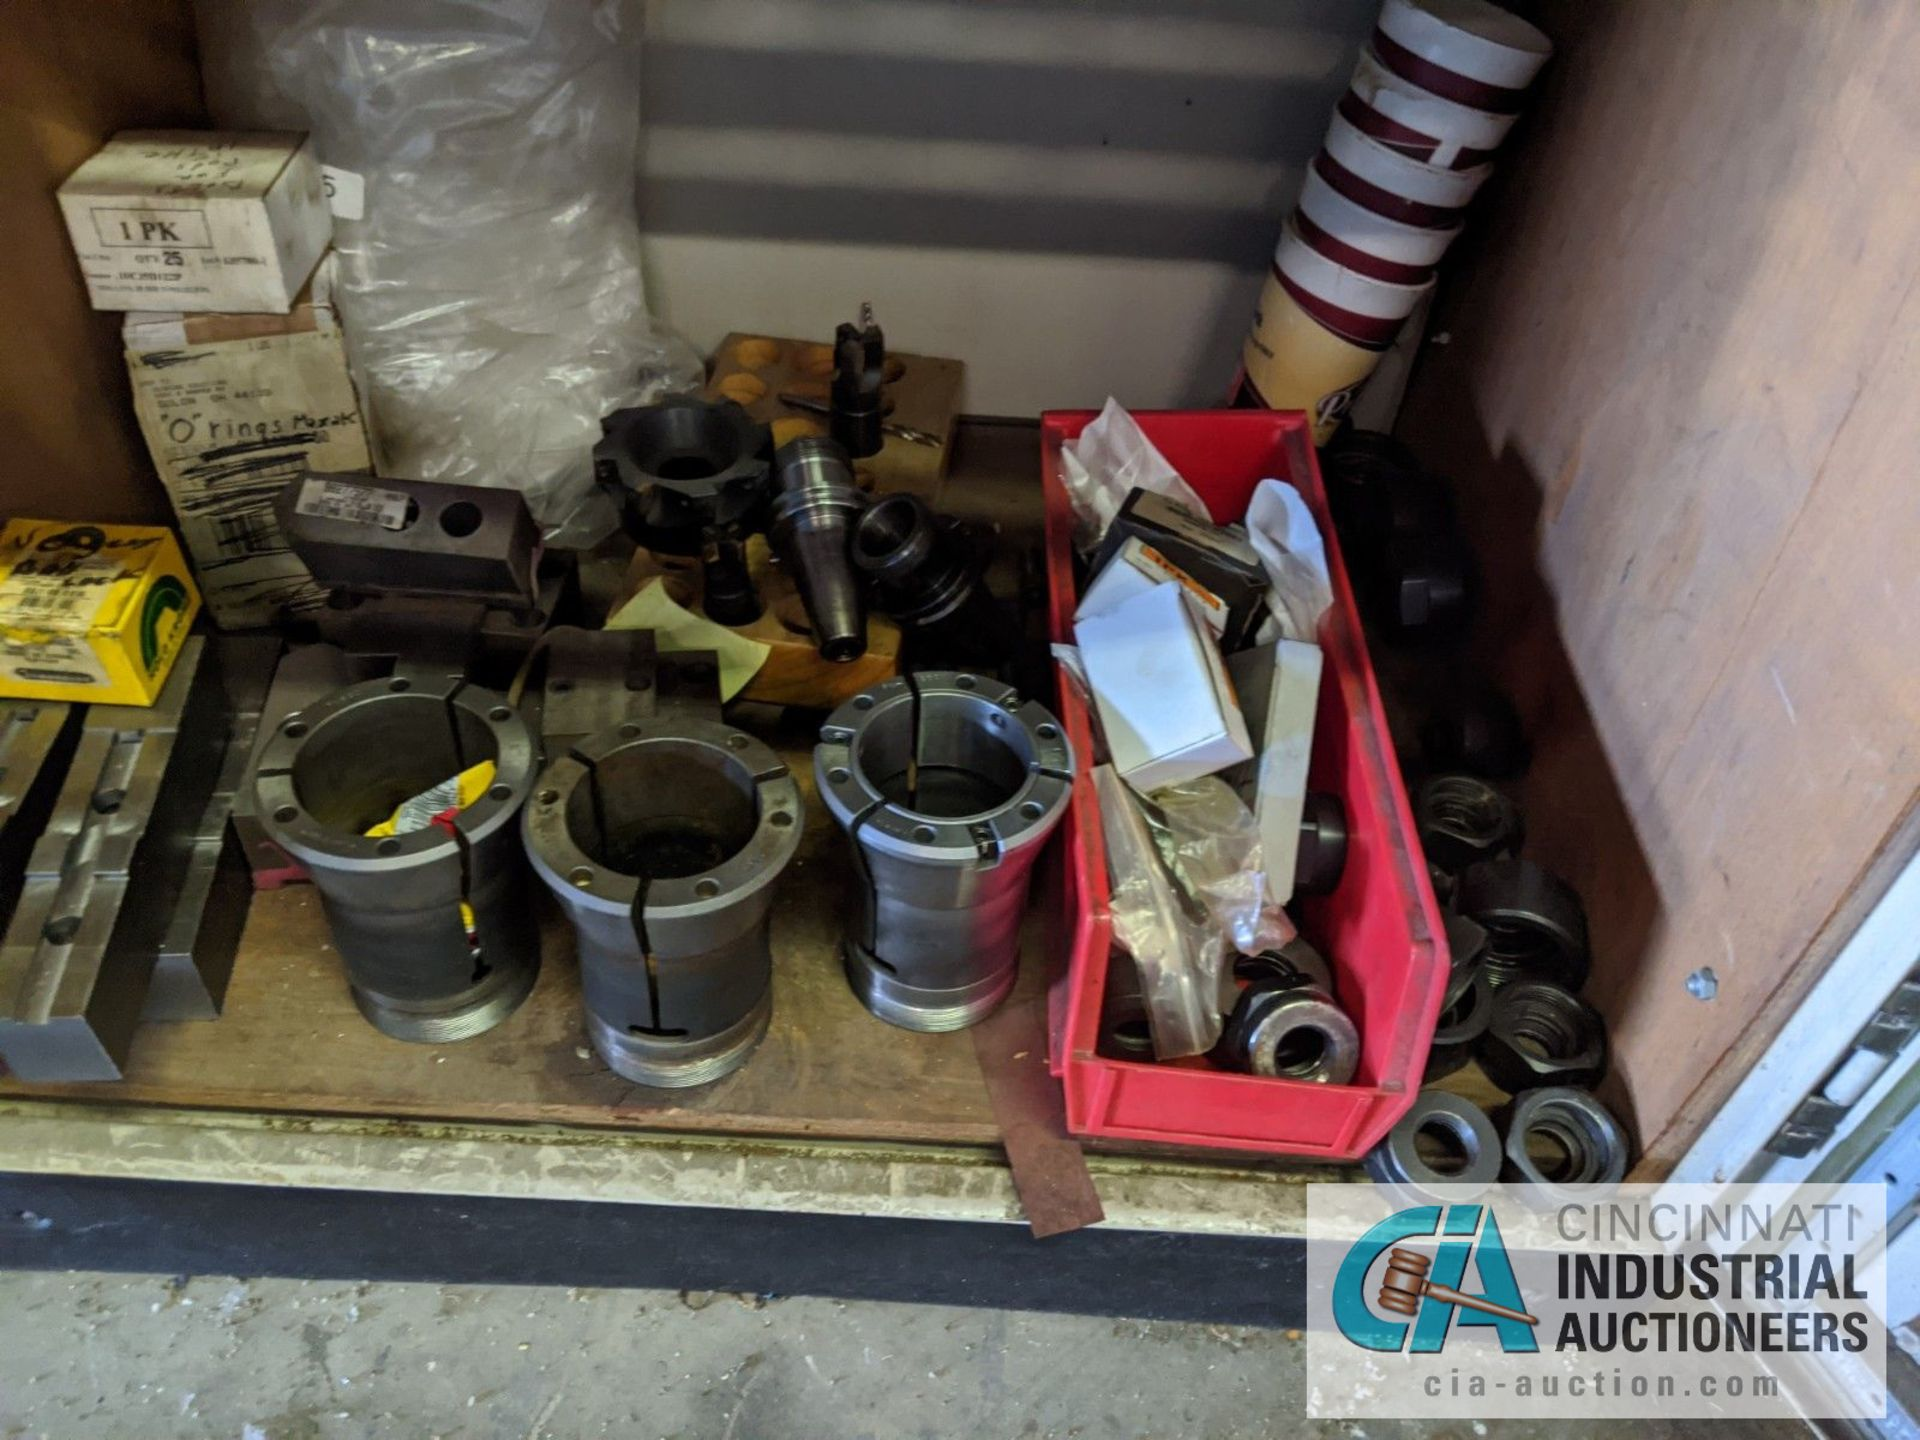 (LOT) CABINET WITH LATHE TOOLING; CHUCK JAWS, COLLETS, SLEEVES, COLLARS - Image 2 of 5